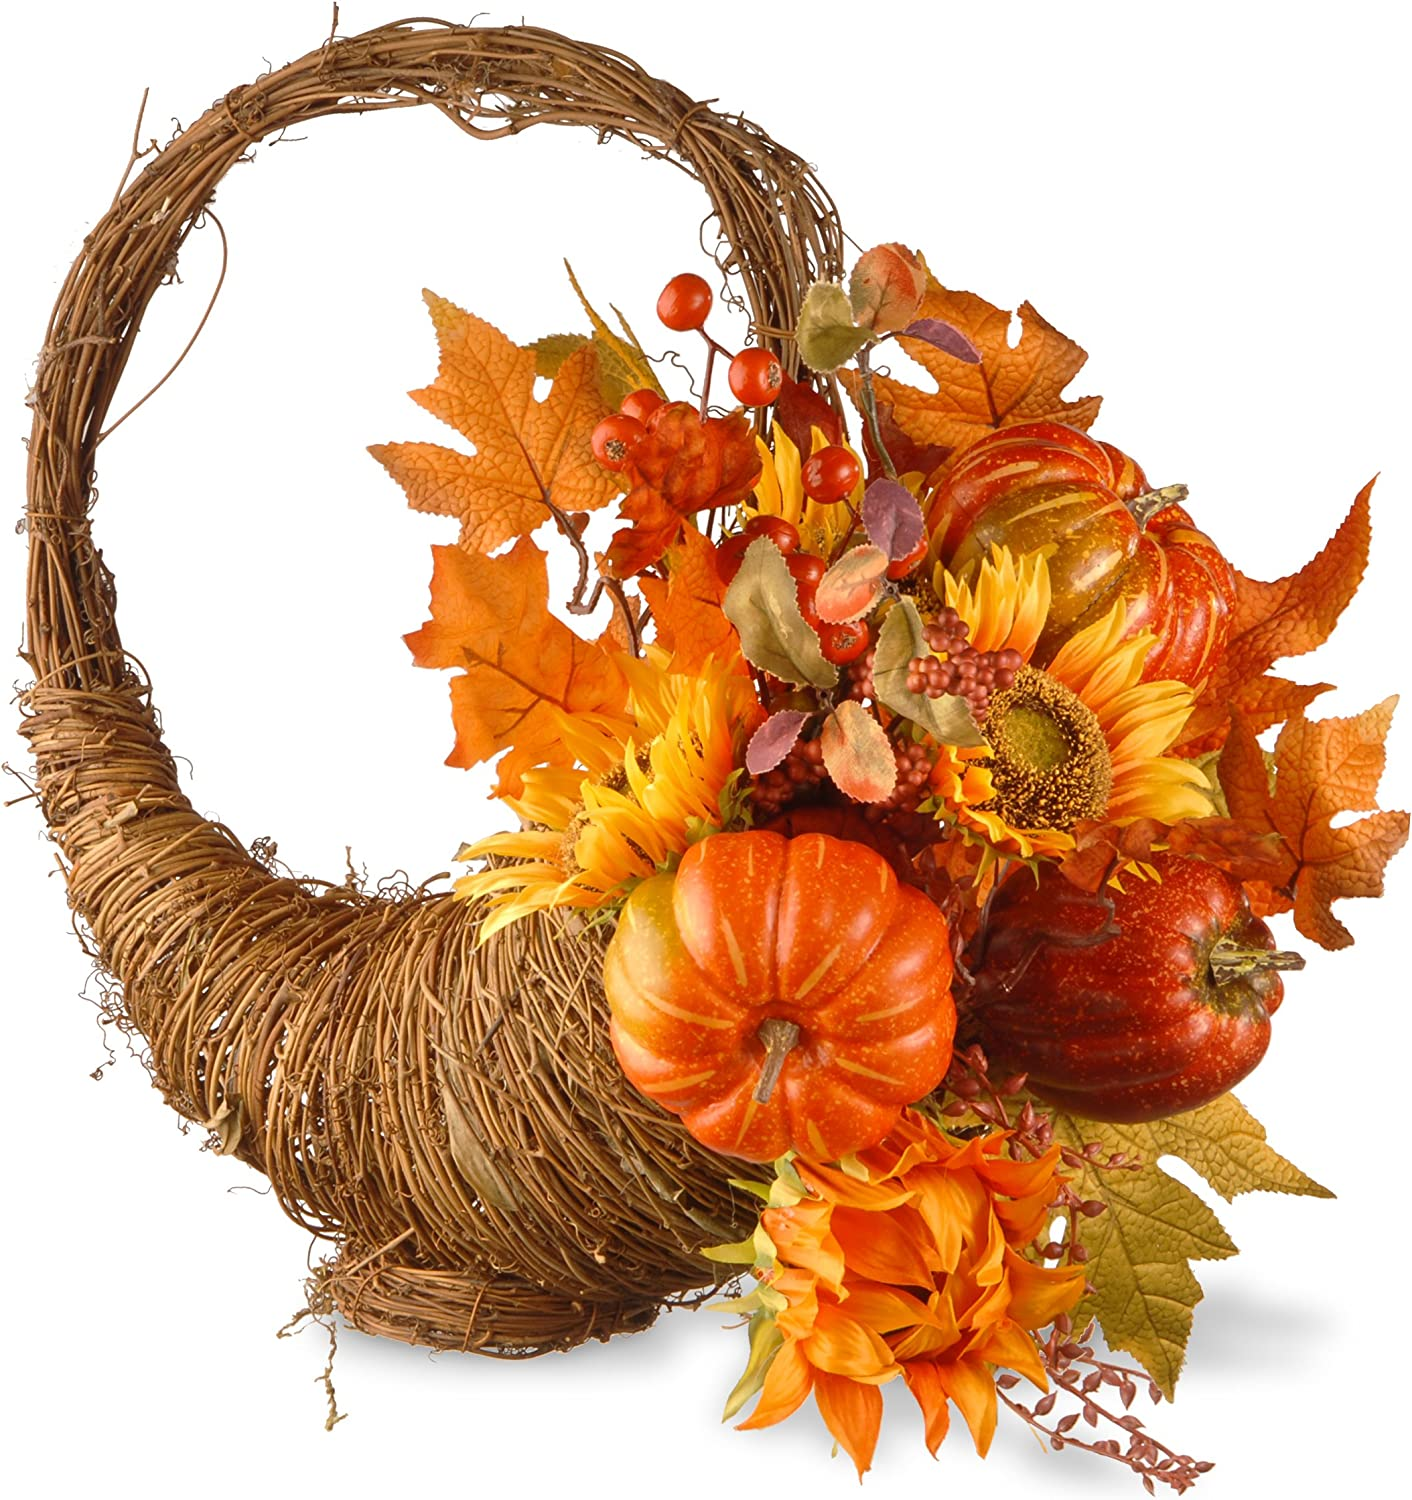 National Tree Company Artificial Autumn Hanging Décor | Flocked with Mixed Decorations | Woven Basket - 22 Inch